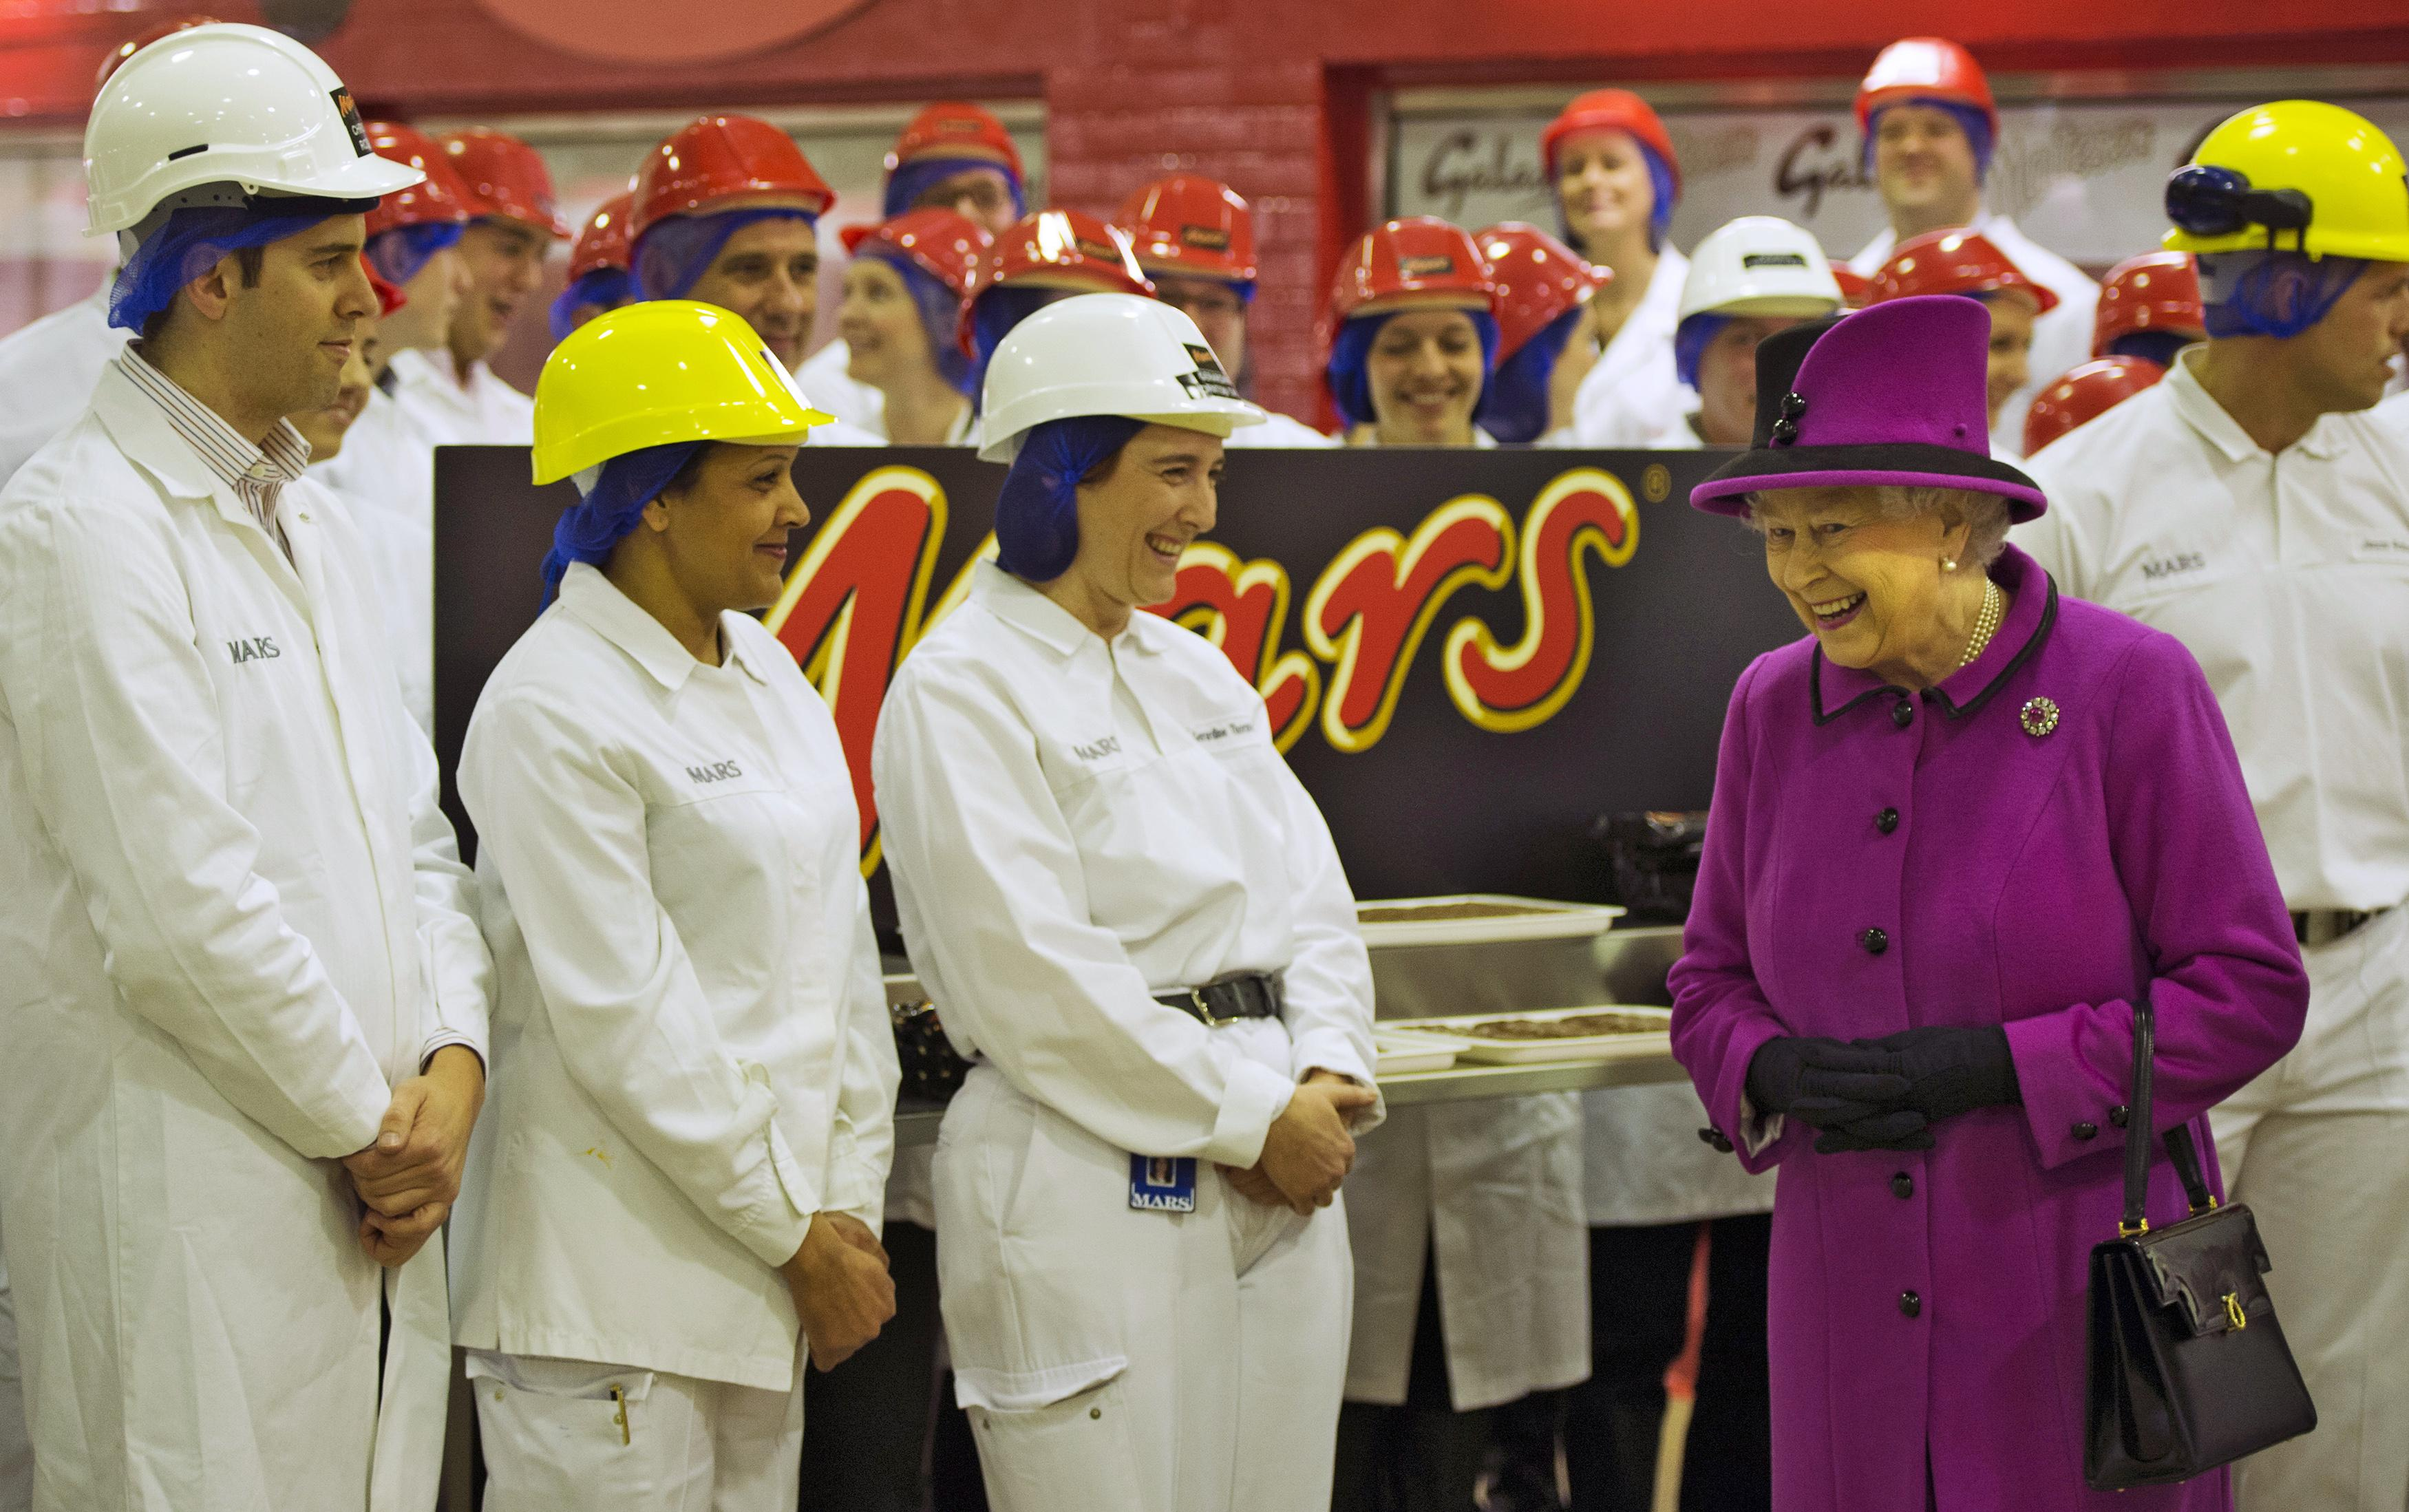 Queen Elizabeth At Mars Chocolate Factory